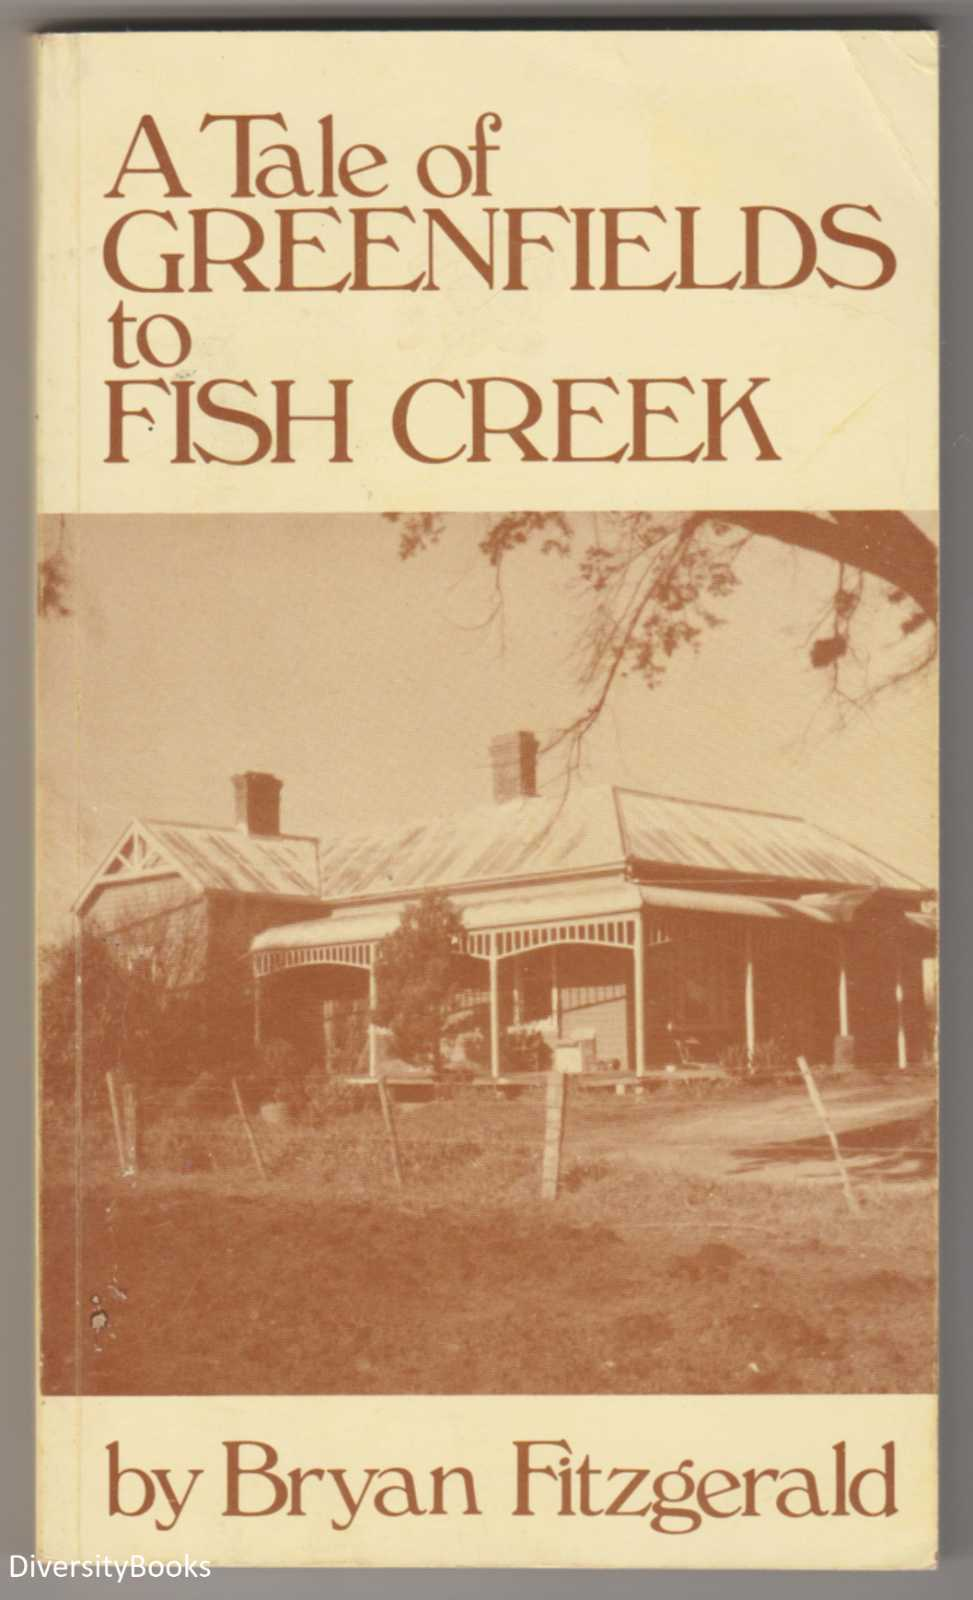 Image for A TALE OF GREENFIELDS TO FISH CREEK